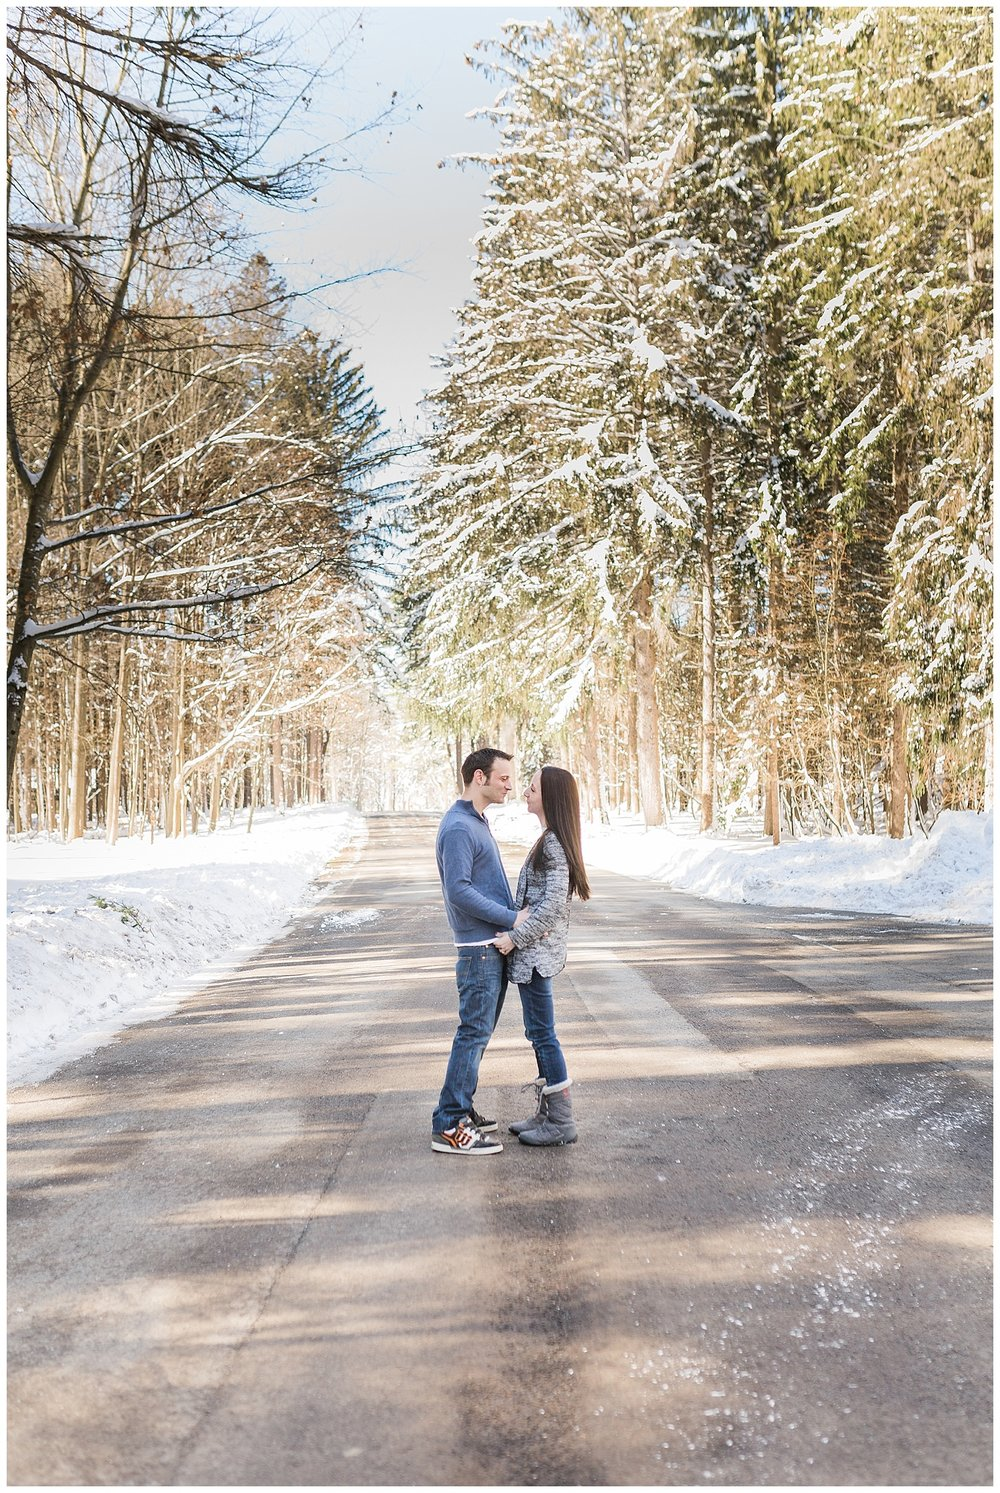 Matt and Jessica - Winter in Letchworth -6_Buffalo wedding photography.jpg